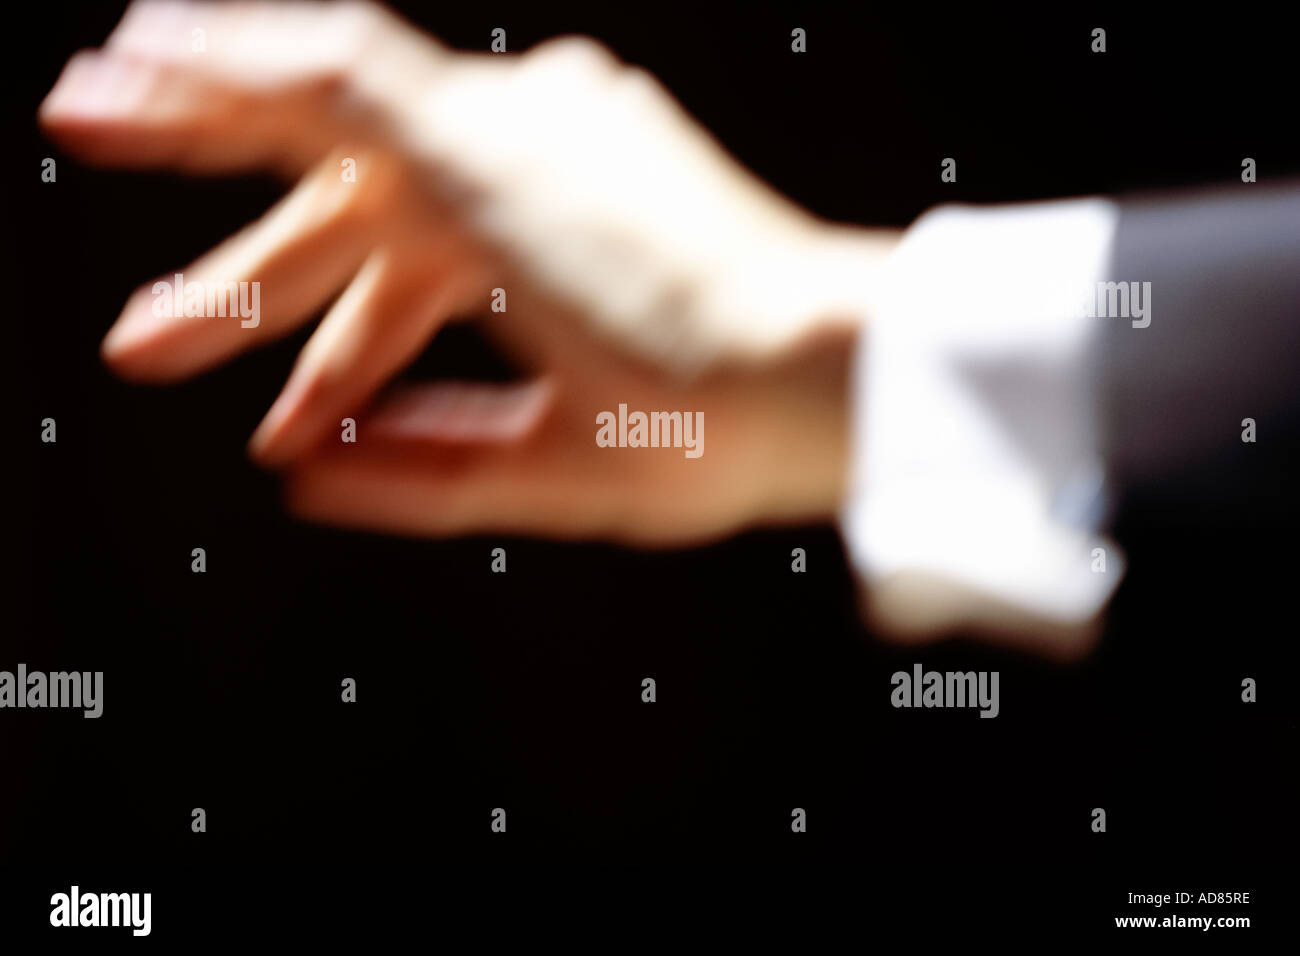 Orchestra conductors hand art orchestra performance performing art performing arts performance art classical music conductor - Stock Image